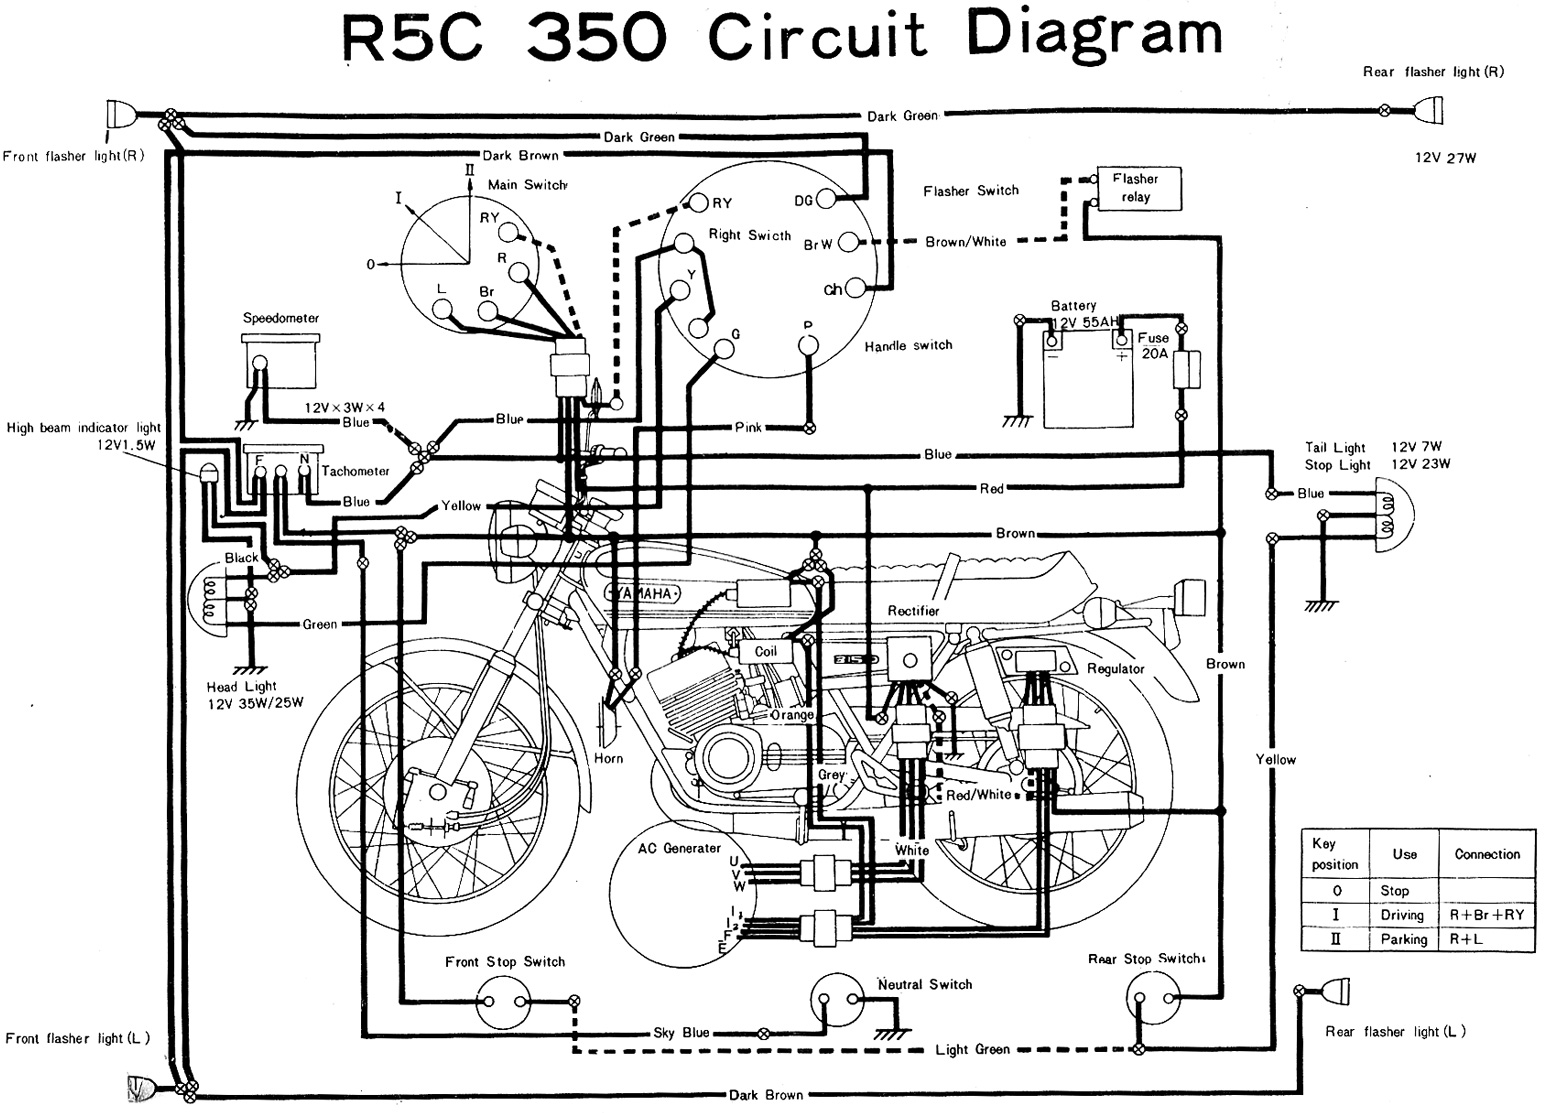 Yamaha R5C 350 Electrical Wiring Diagram1 motorcycle wiring diagrams motorcycle wiring diagram at crackthecode.co